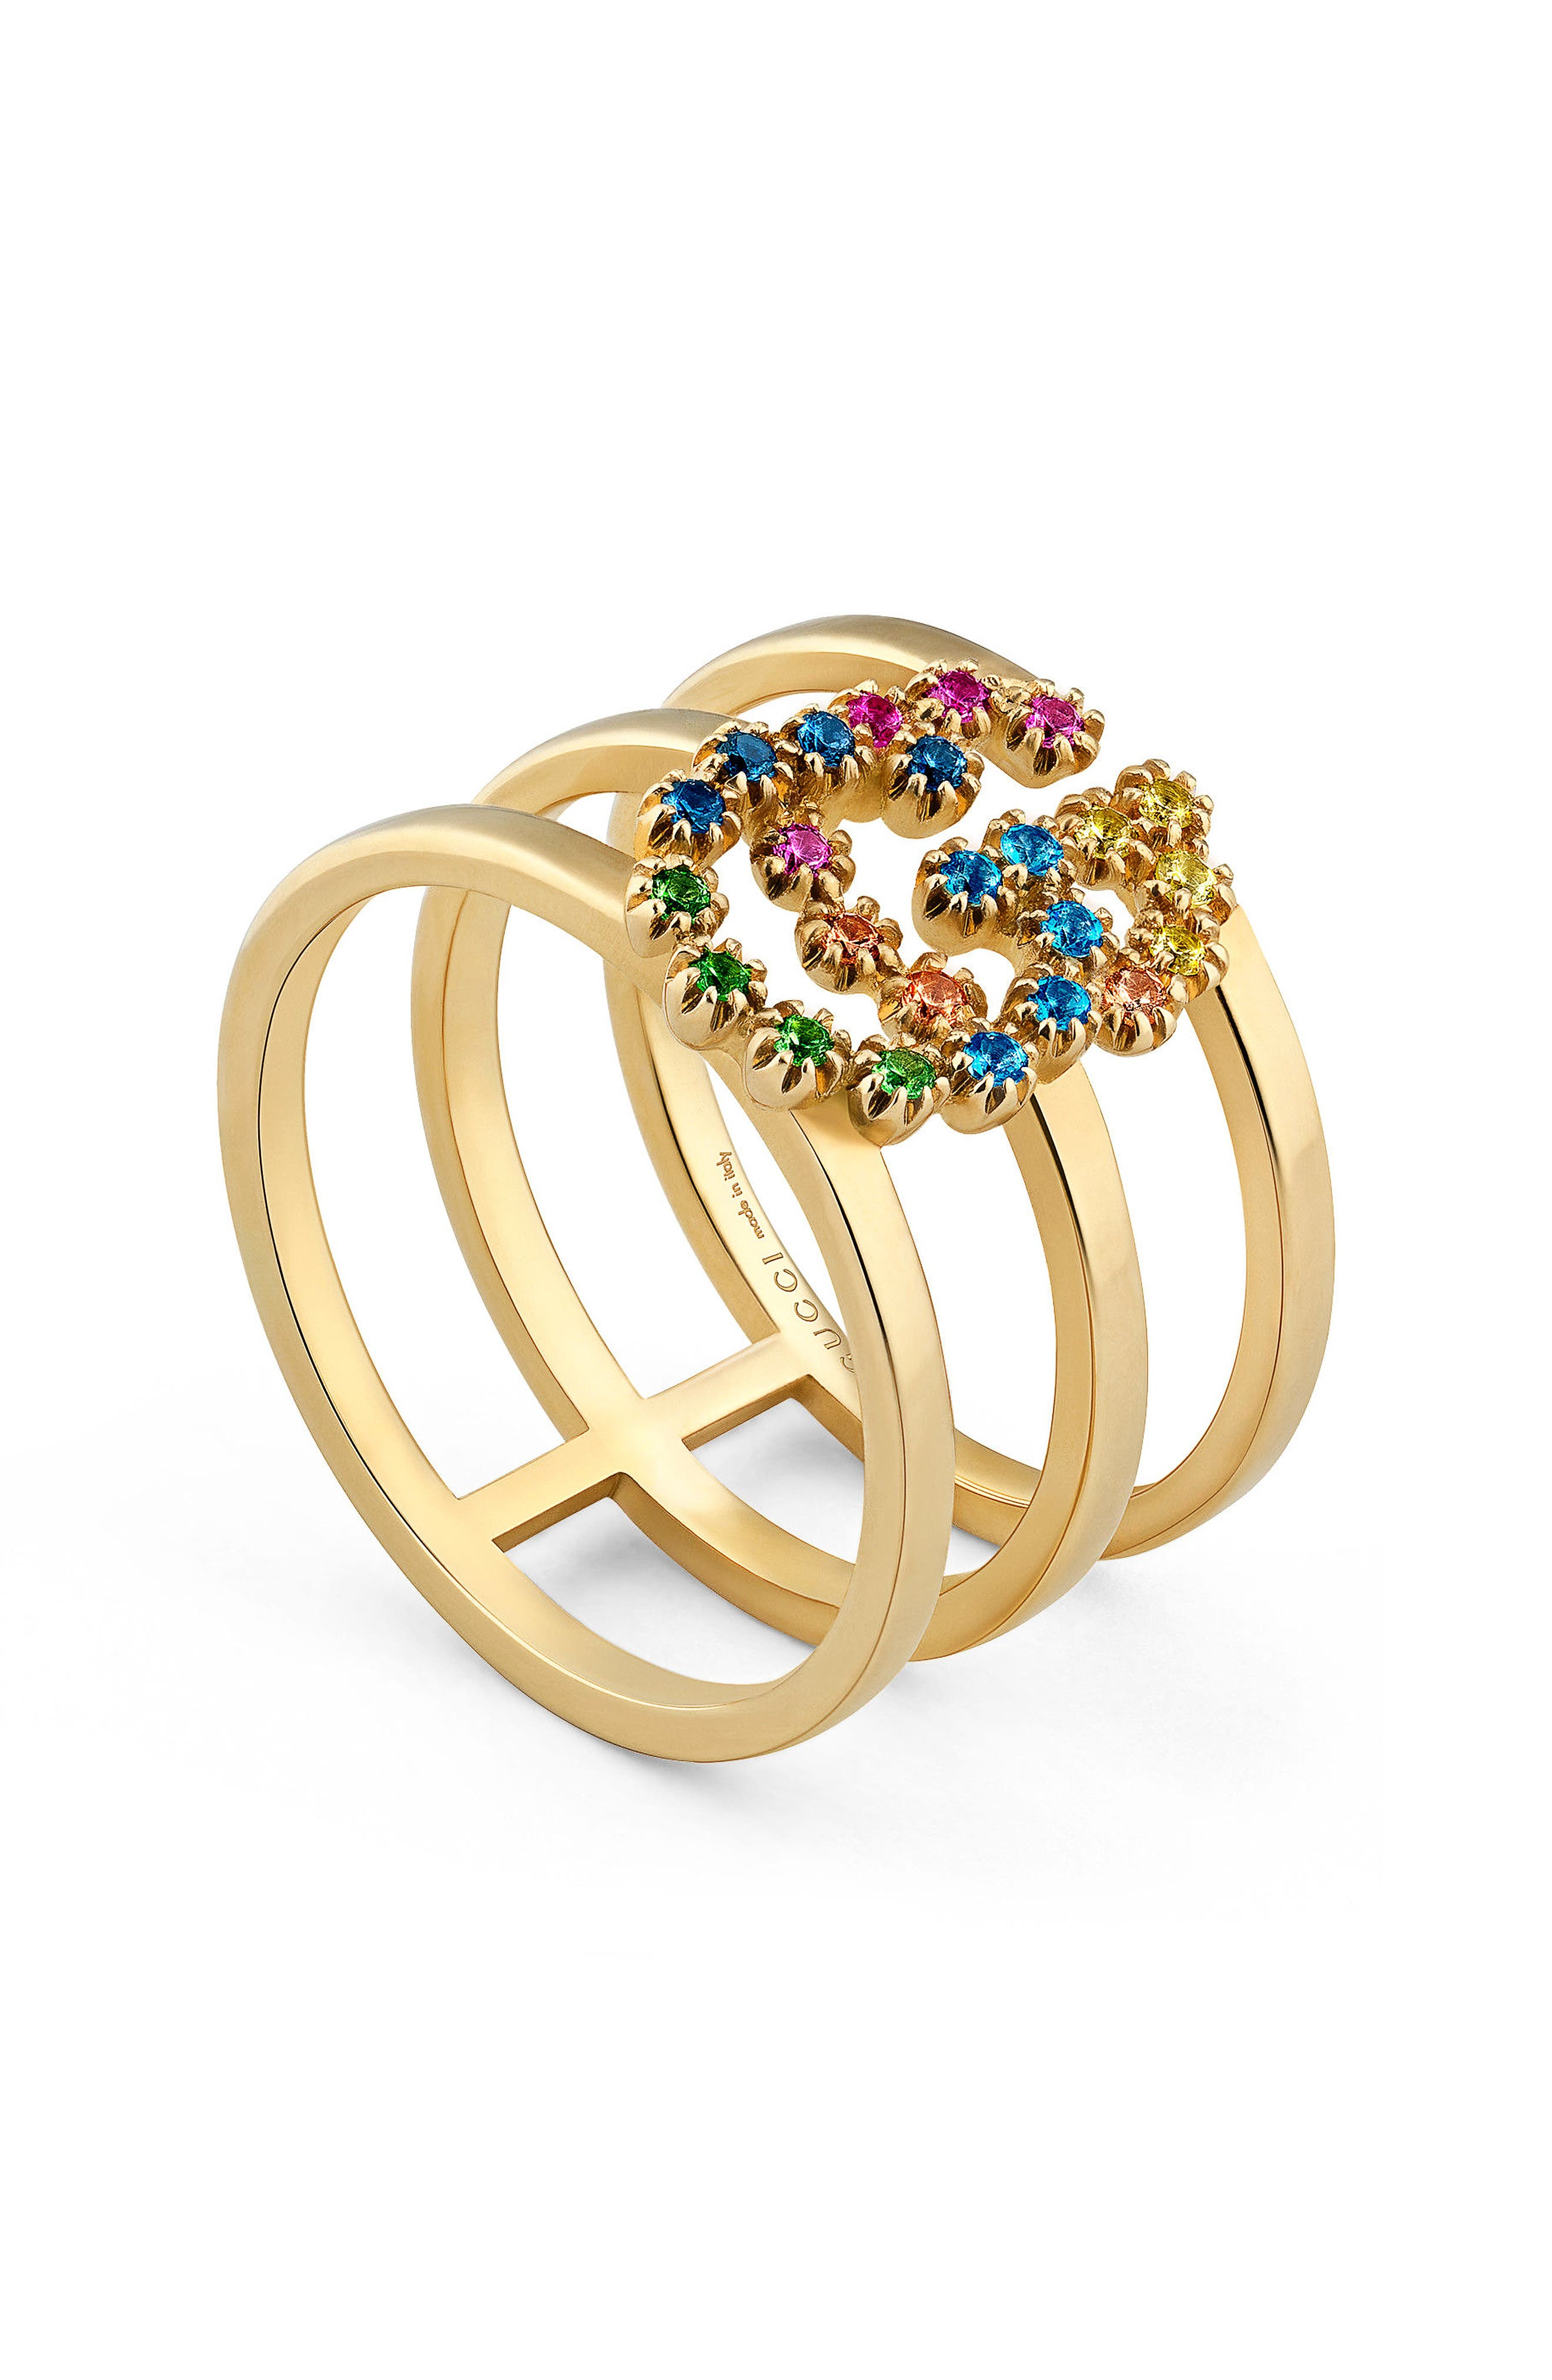 GUCCI,                             Double G Multi Stone Three-Row Ring,                             Main thumbnail 1, color,                             YELLOW GOLD